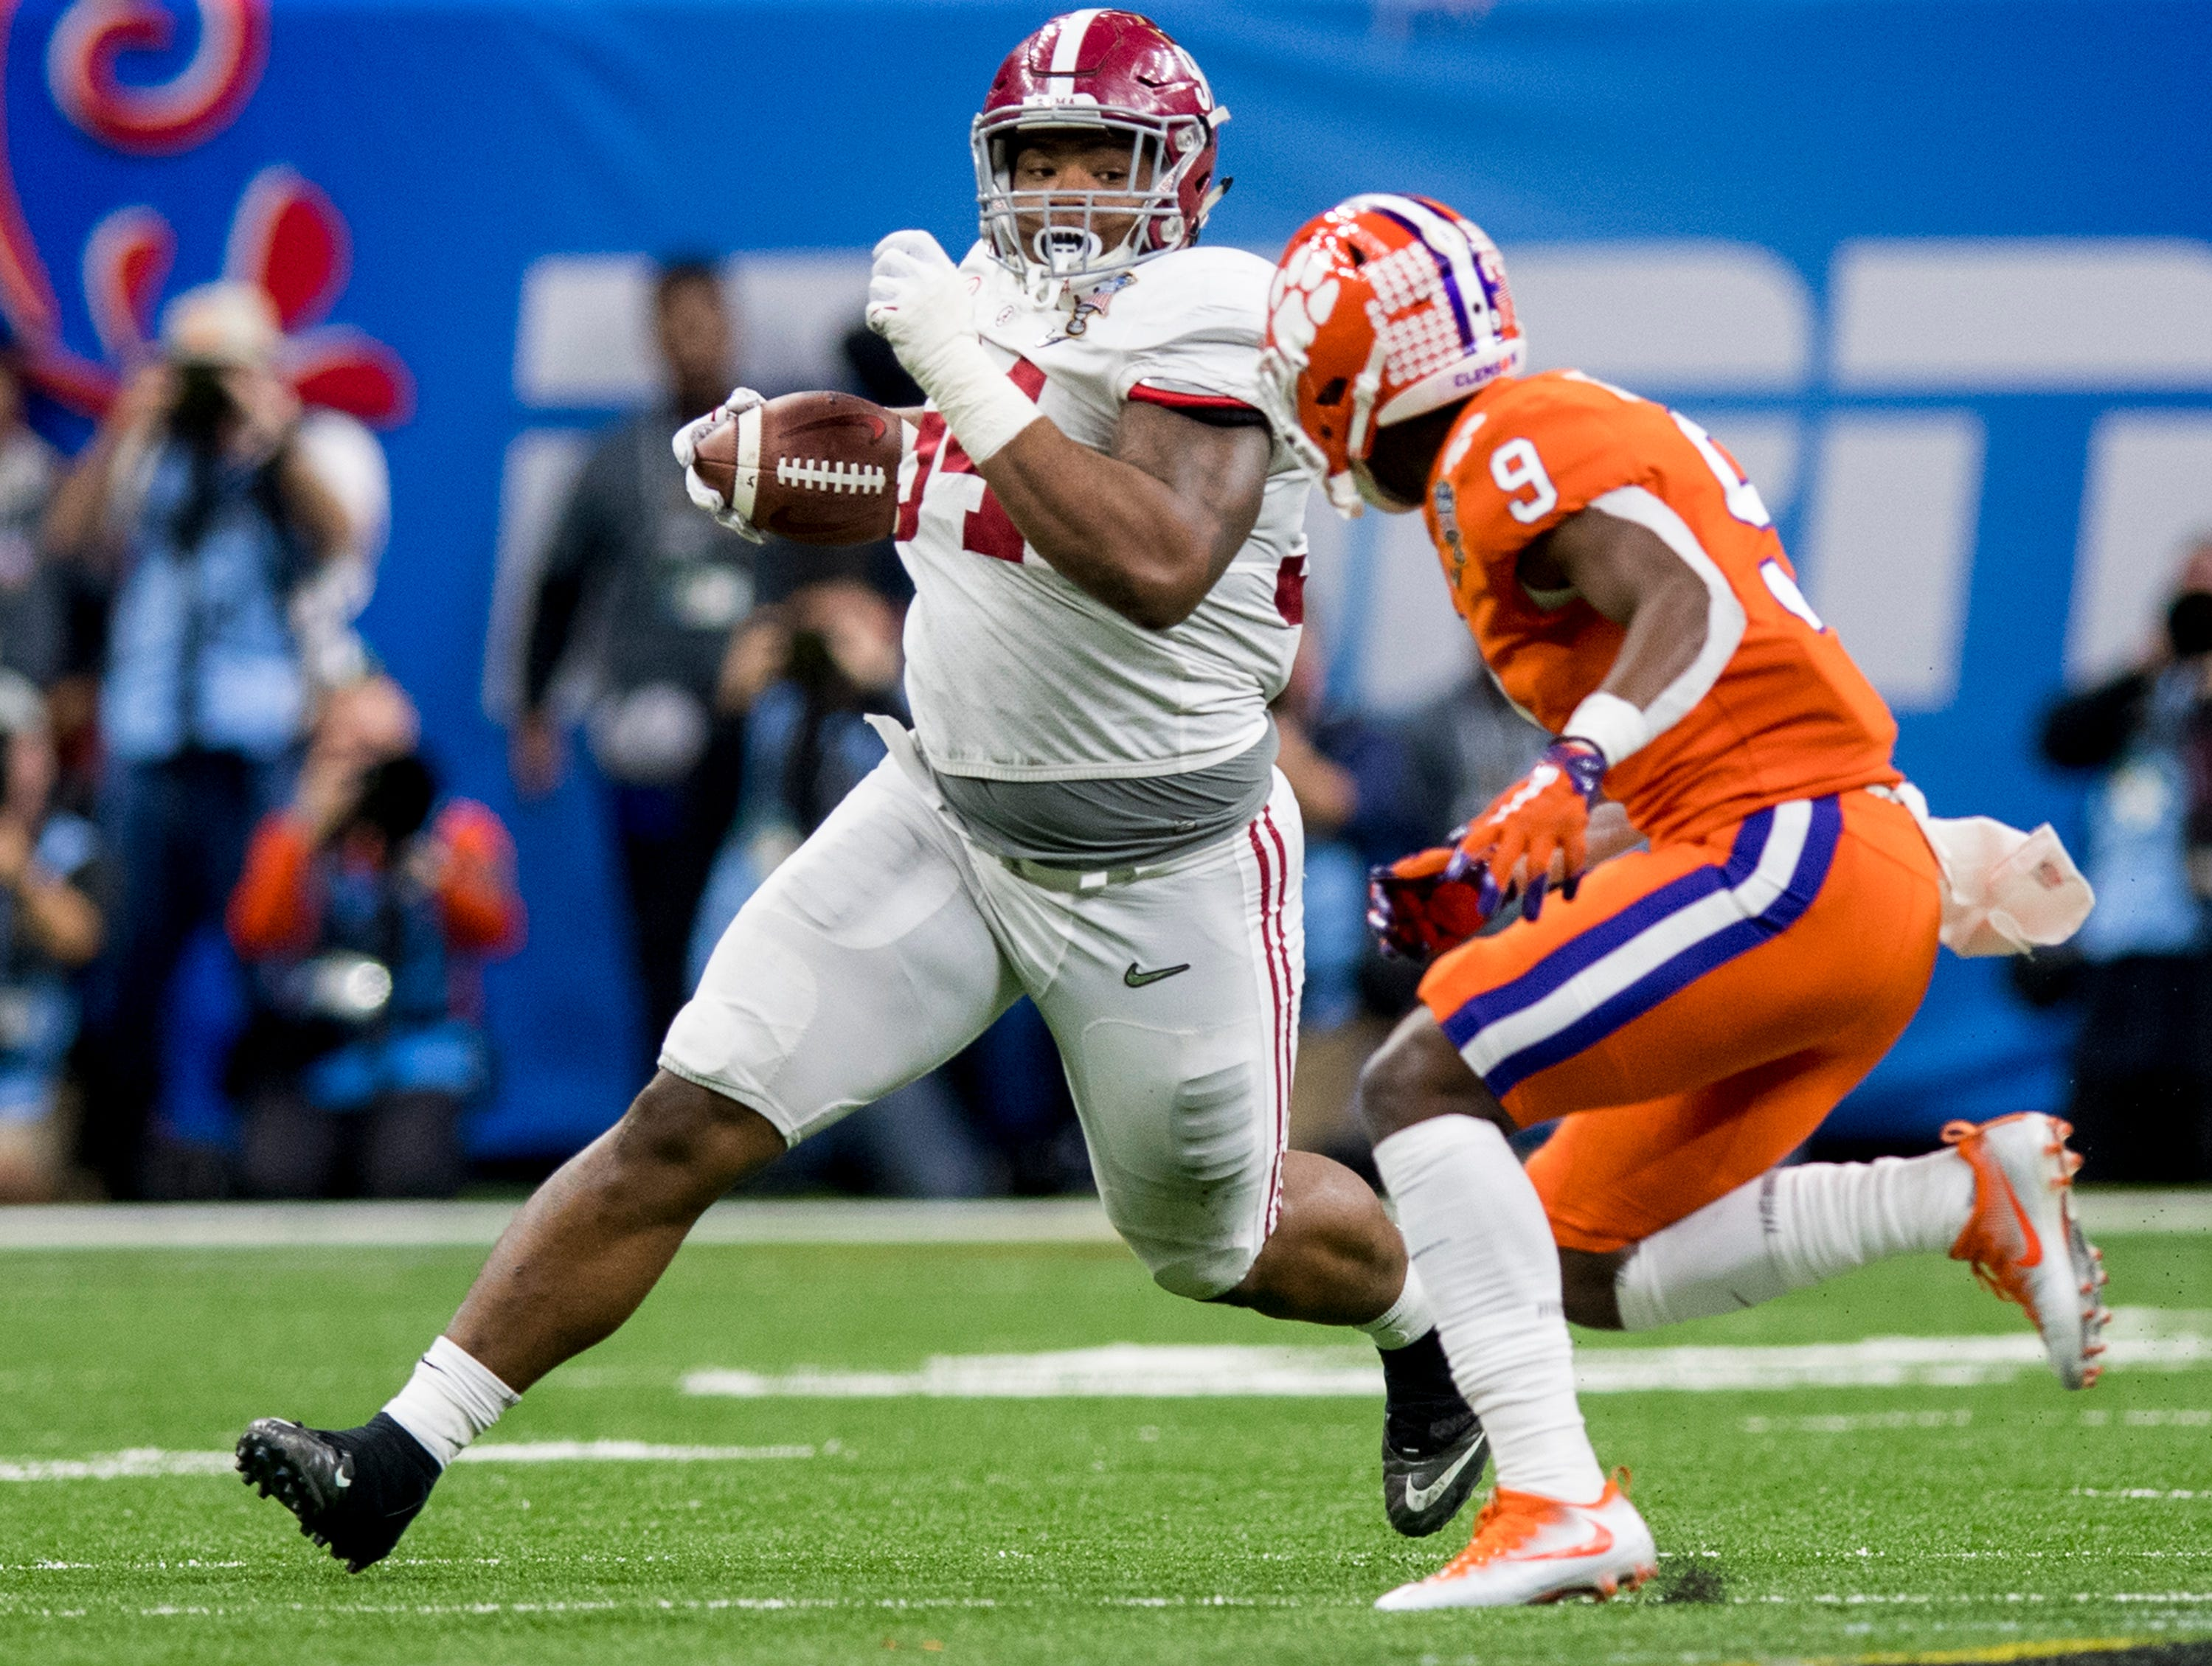 Alabama defensive lineman DaÕRon Payne (94) returns an interception against Clemson in the Sugar Bowl at the Superdome in New Orleans, La. on Monday January 1, 2018.